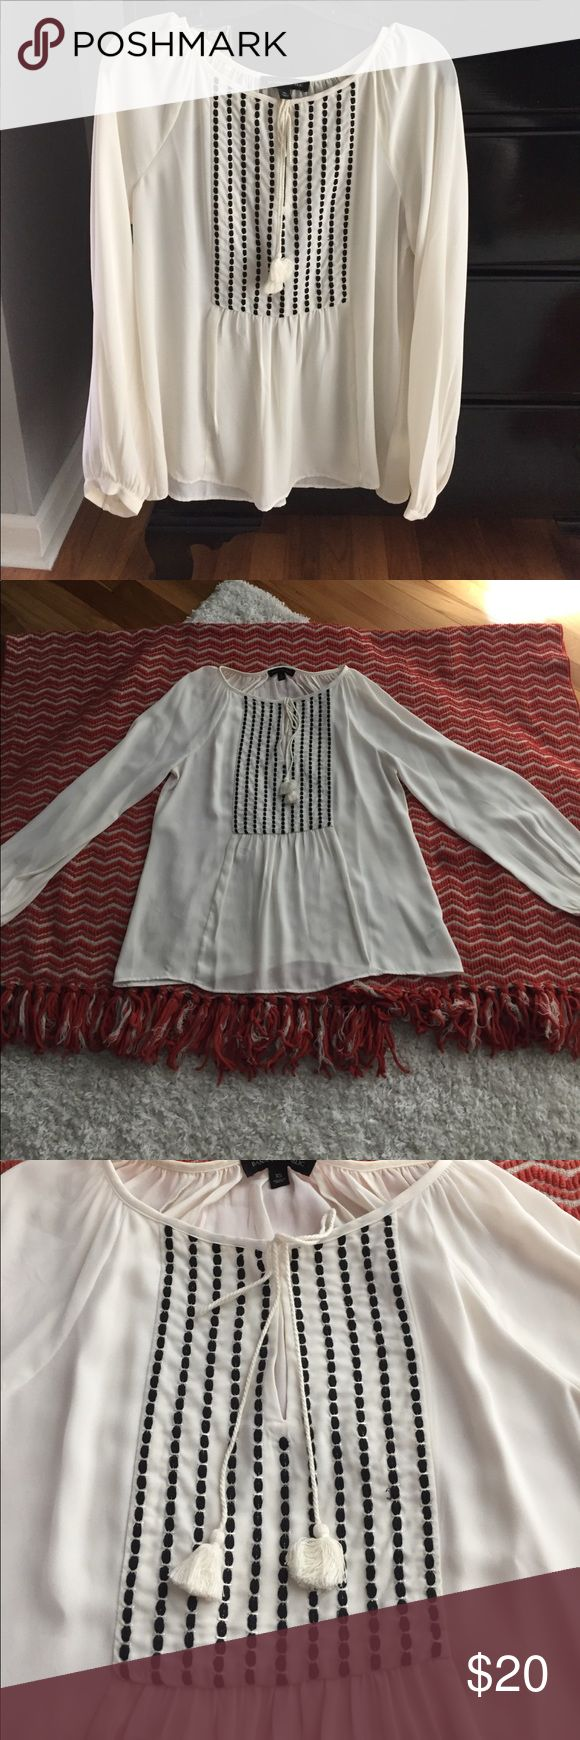 Banana Republic Dressy Top Selling a beautiful EUC dressy Banana Republic top in size XS. Shear cream color with black detail and tassel design on the front. Can wear a cream or nude cami underneath or a nude bra. 100% polyester. Smoke free home! Banana Republic Tops Blouses